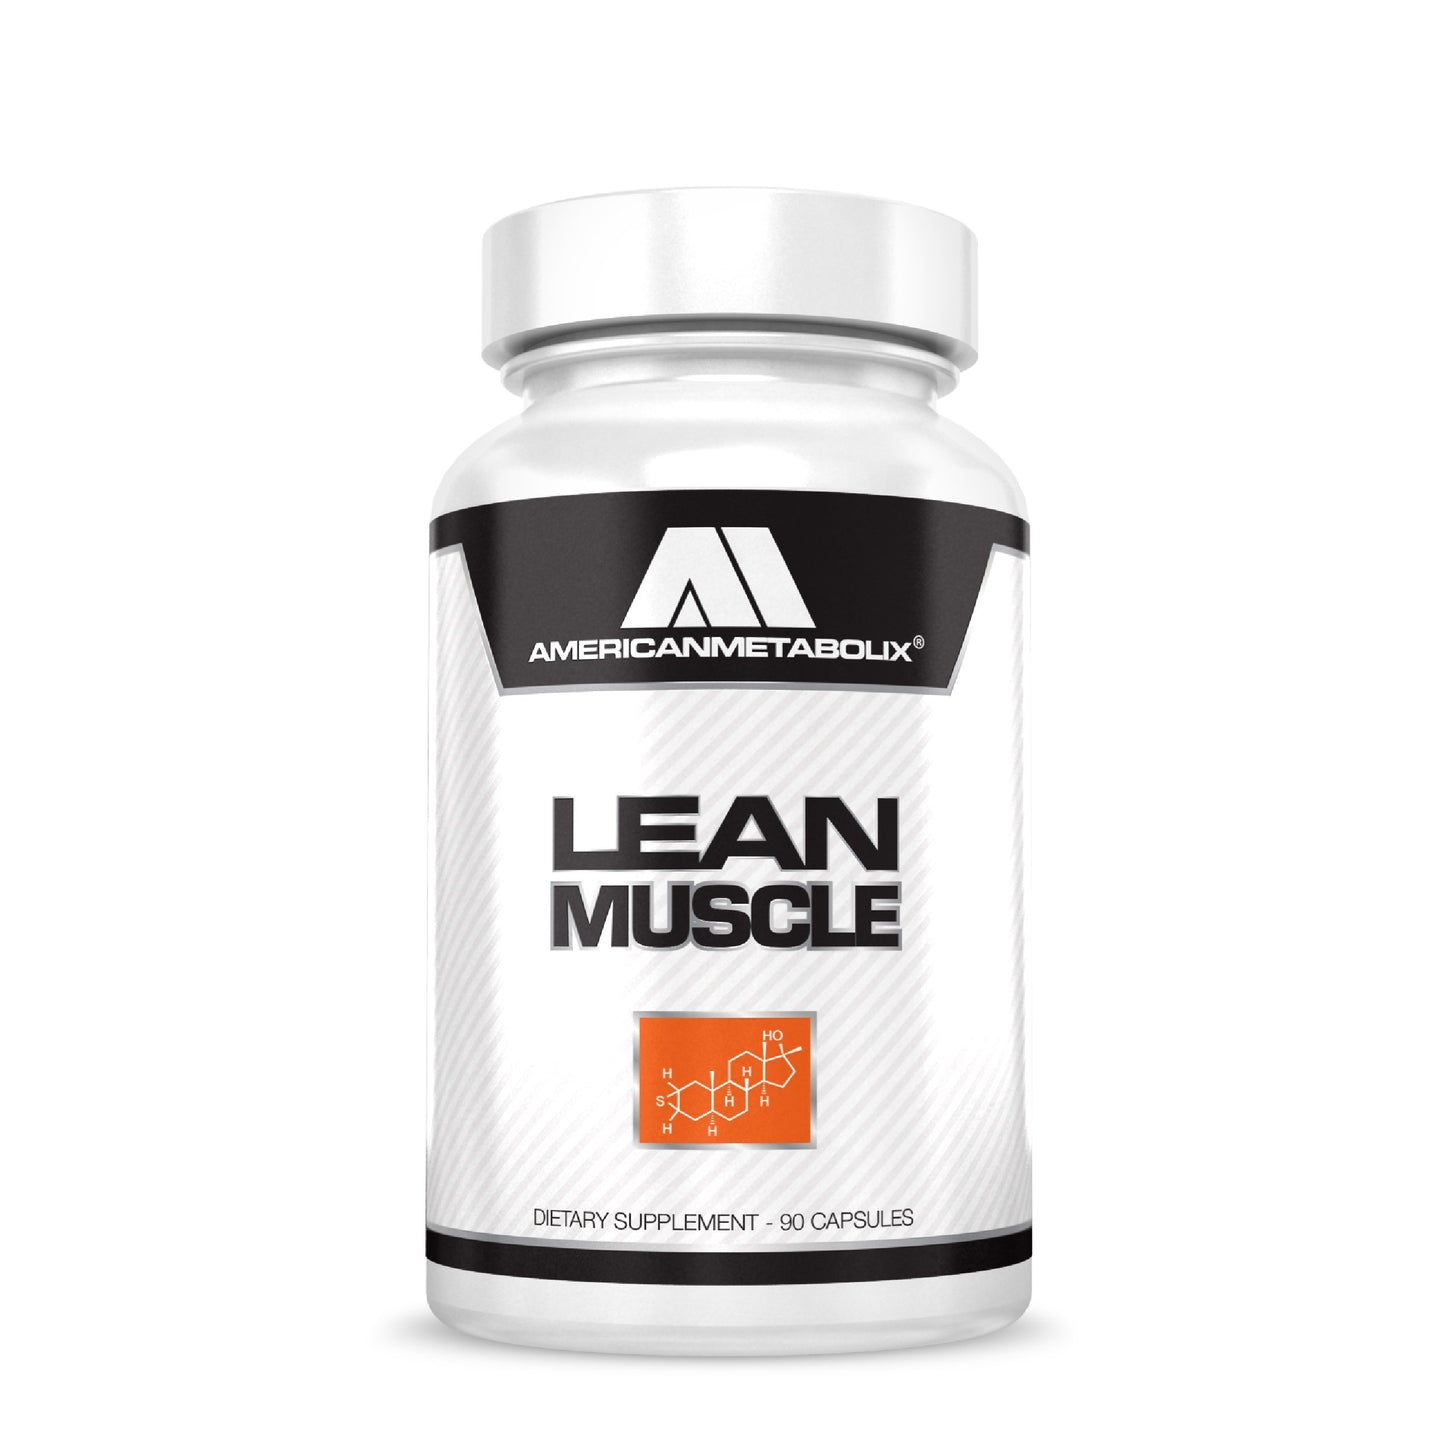 American Metabolix Lean Muscle (90 Caps)